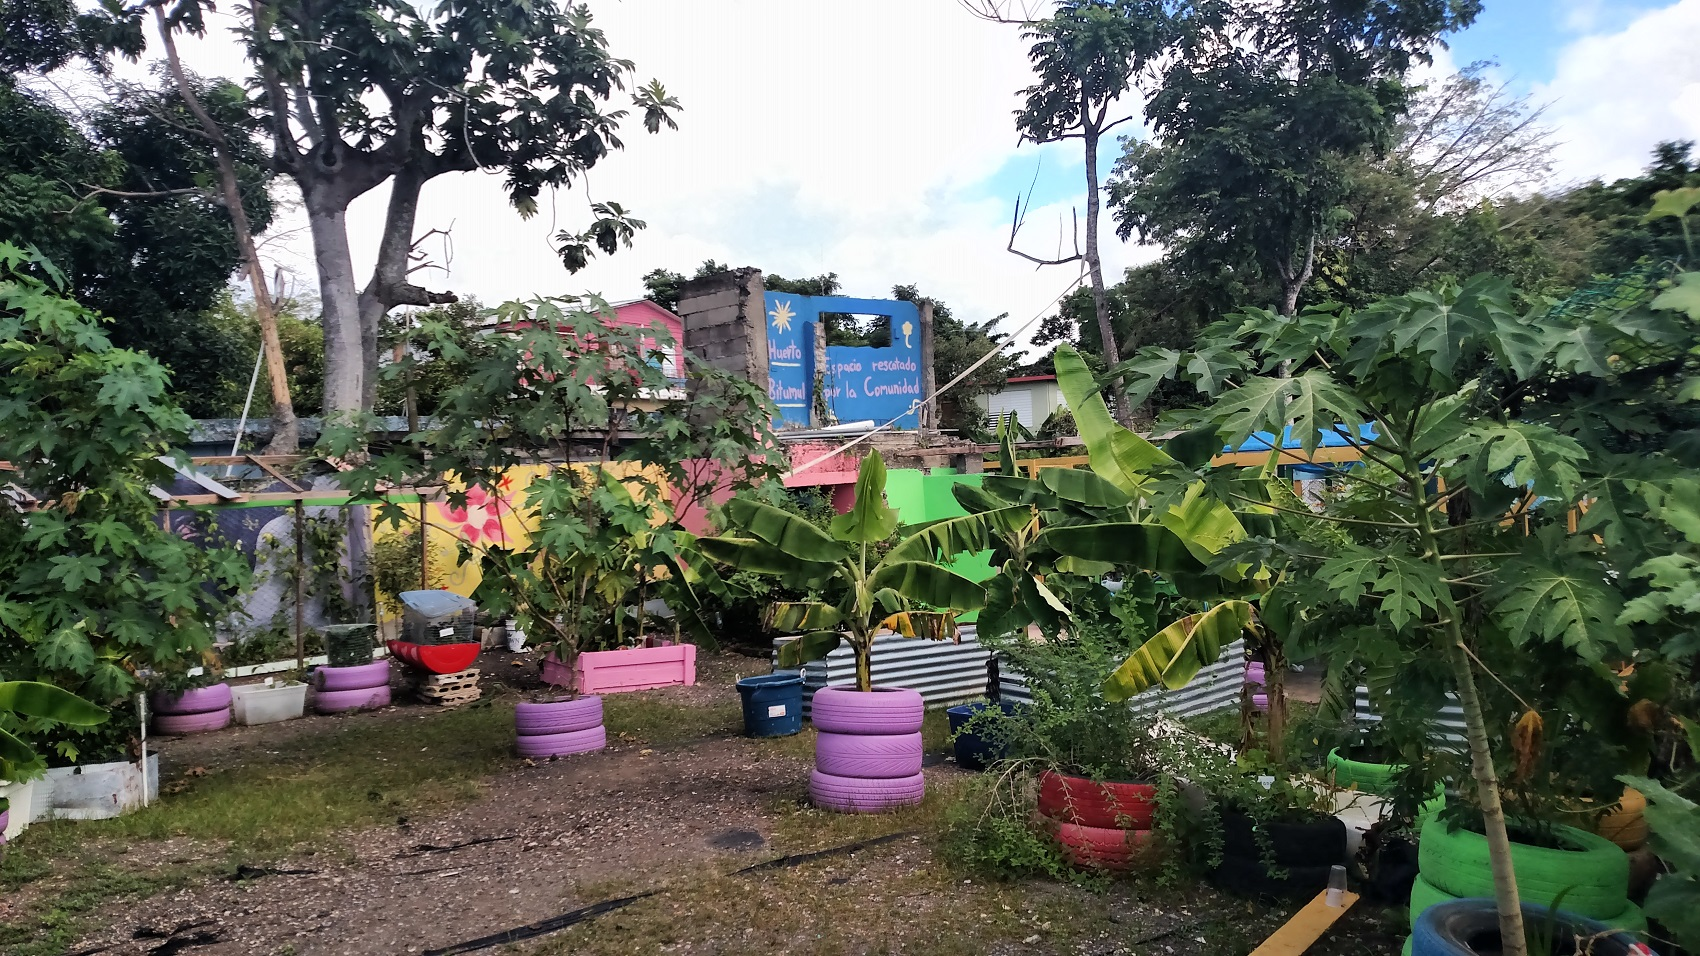 How This Canal Community In Puerto Rico Evaded Gentrification